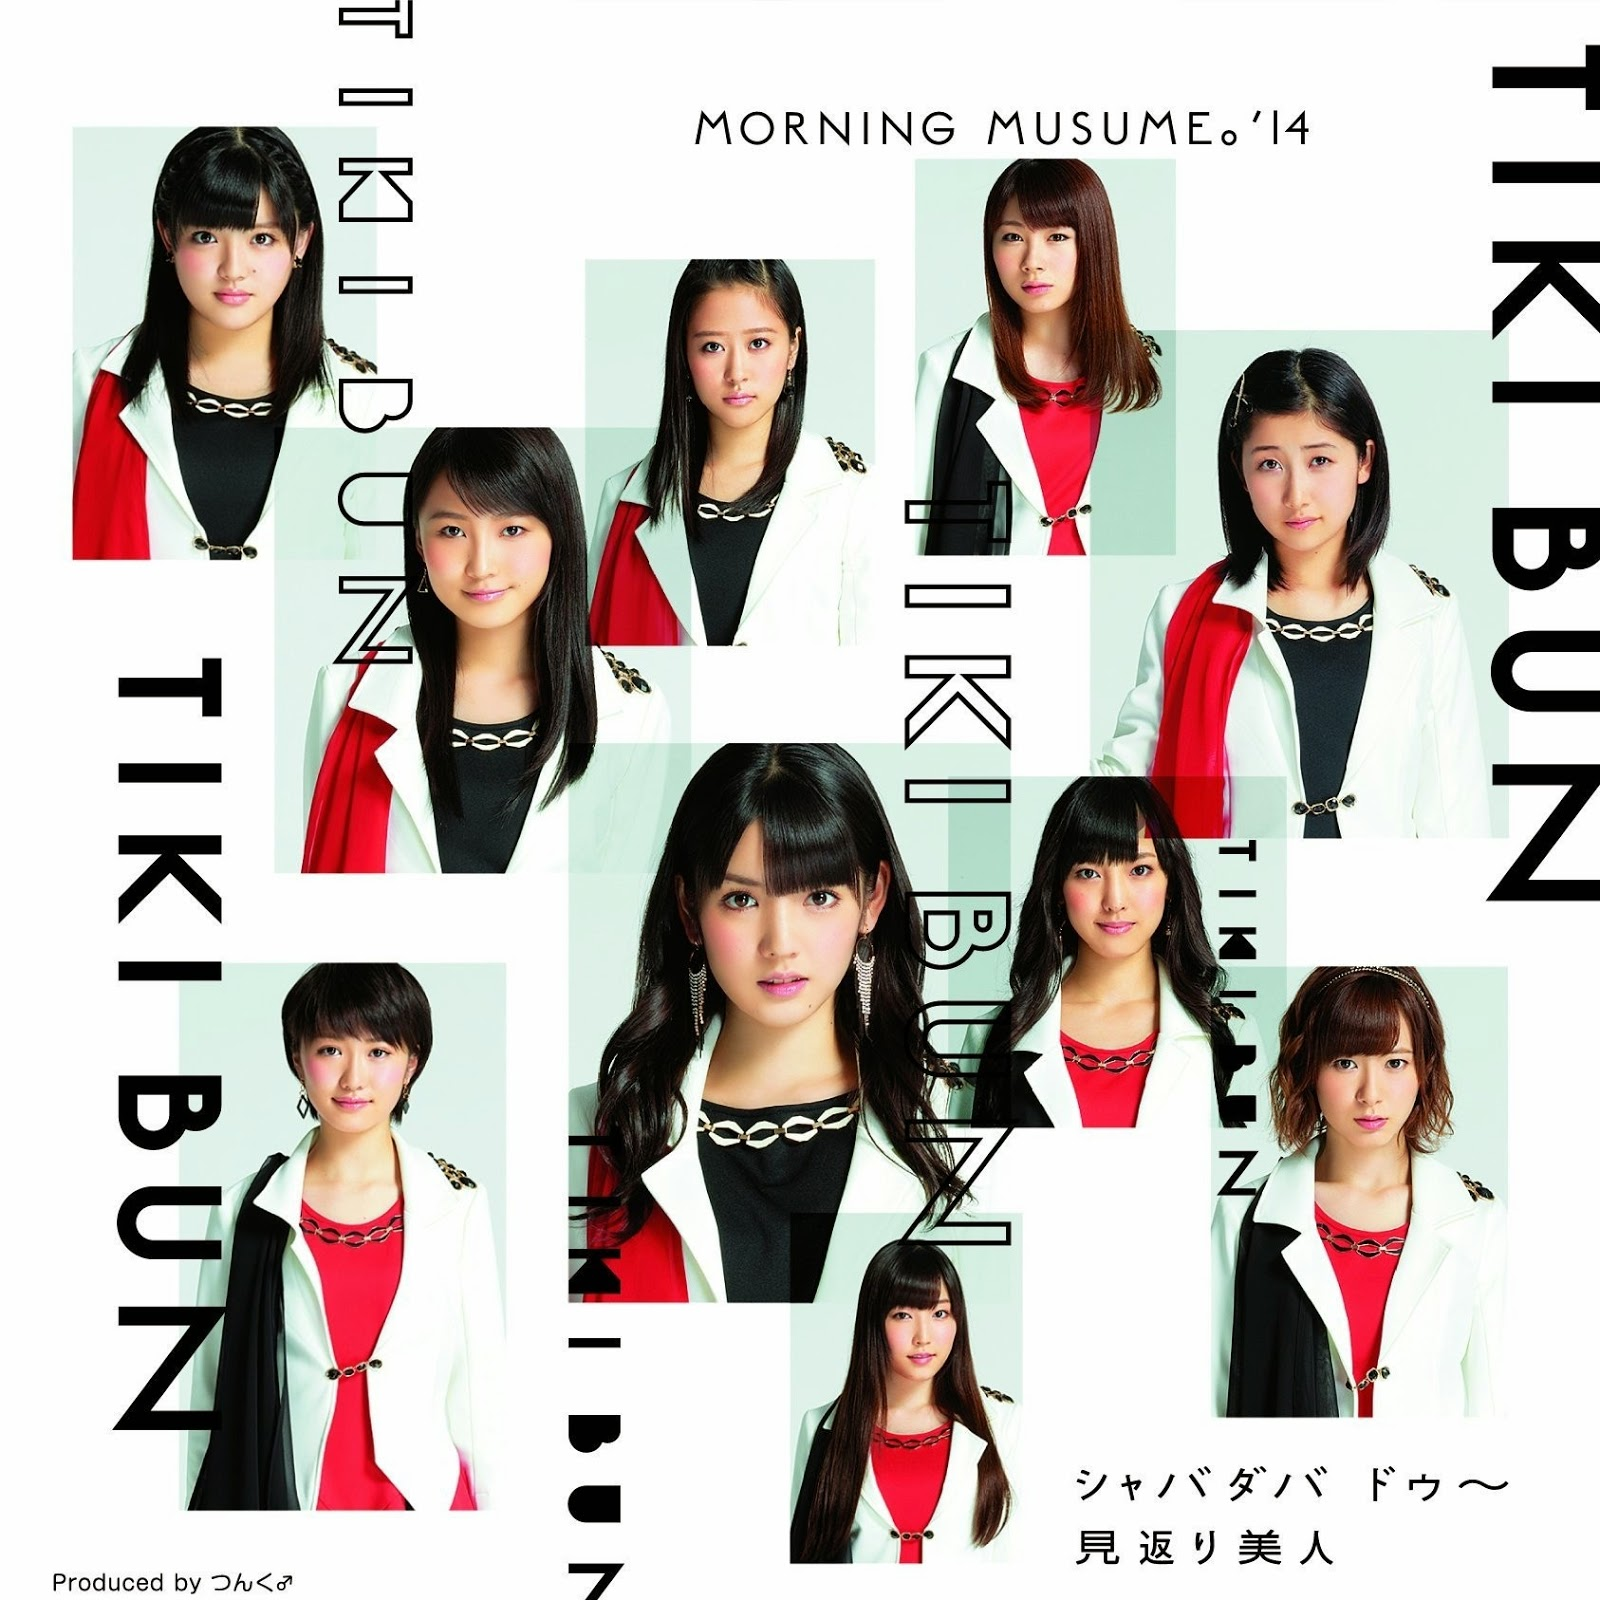 Morning Musume 15 - One and Only [PV]   the number 244